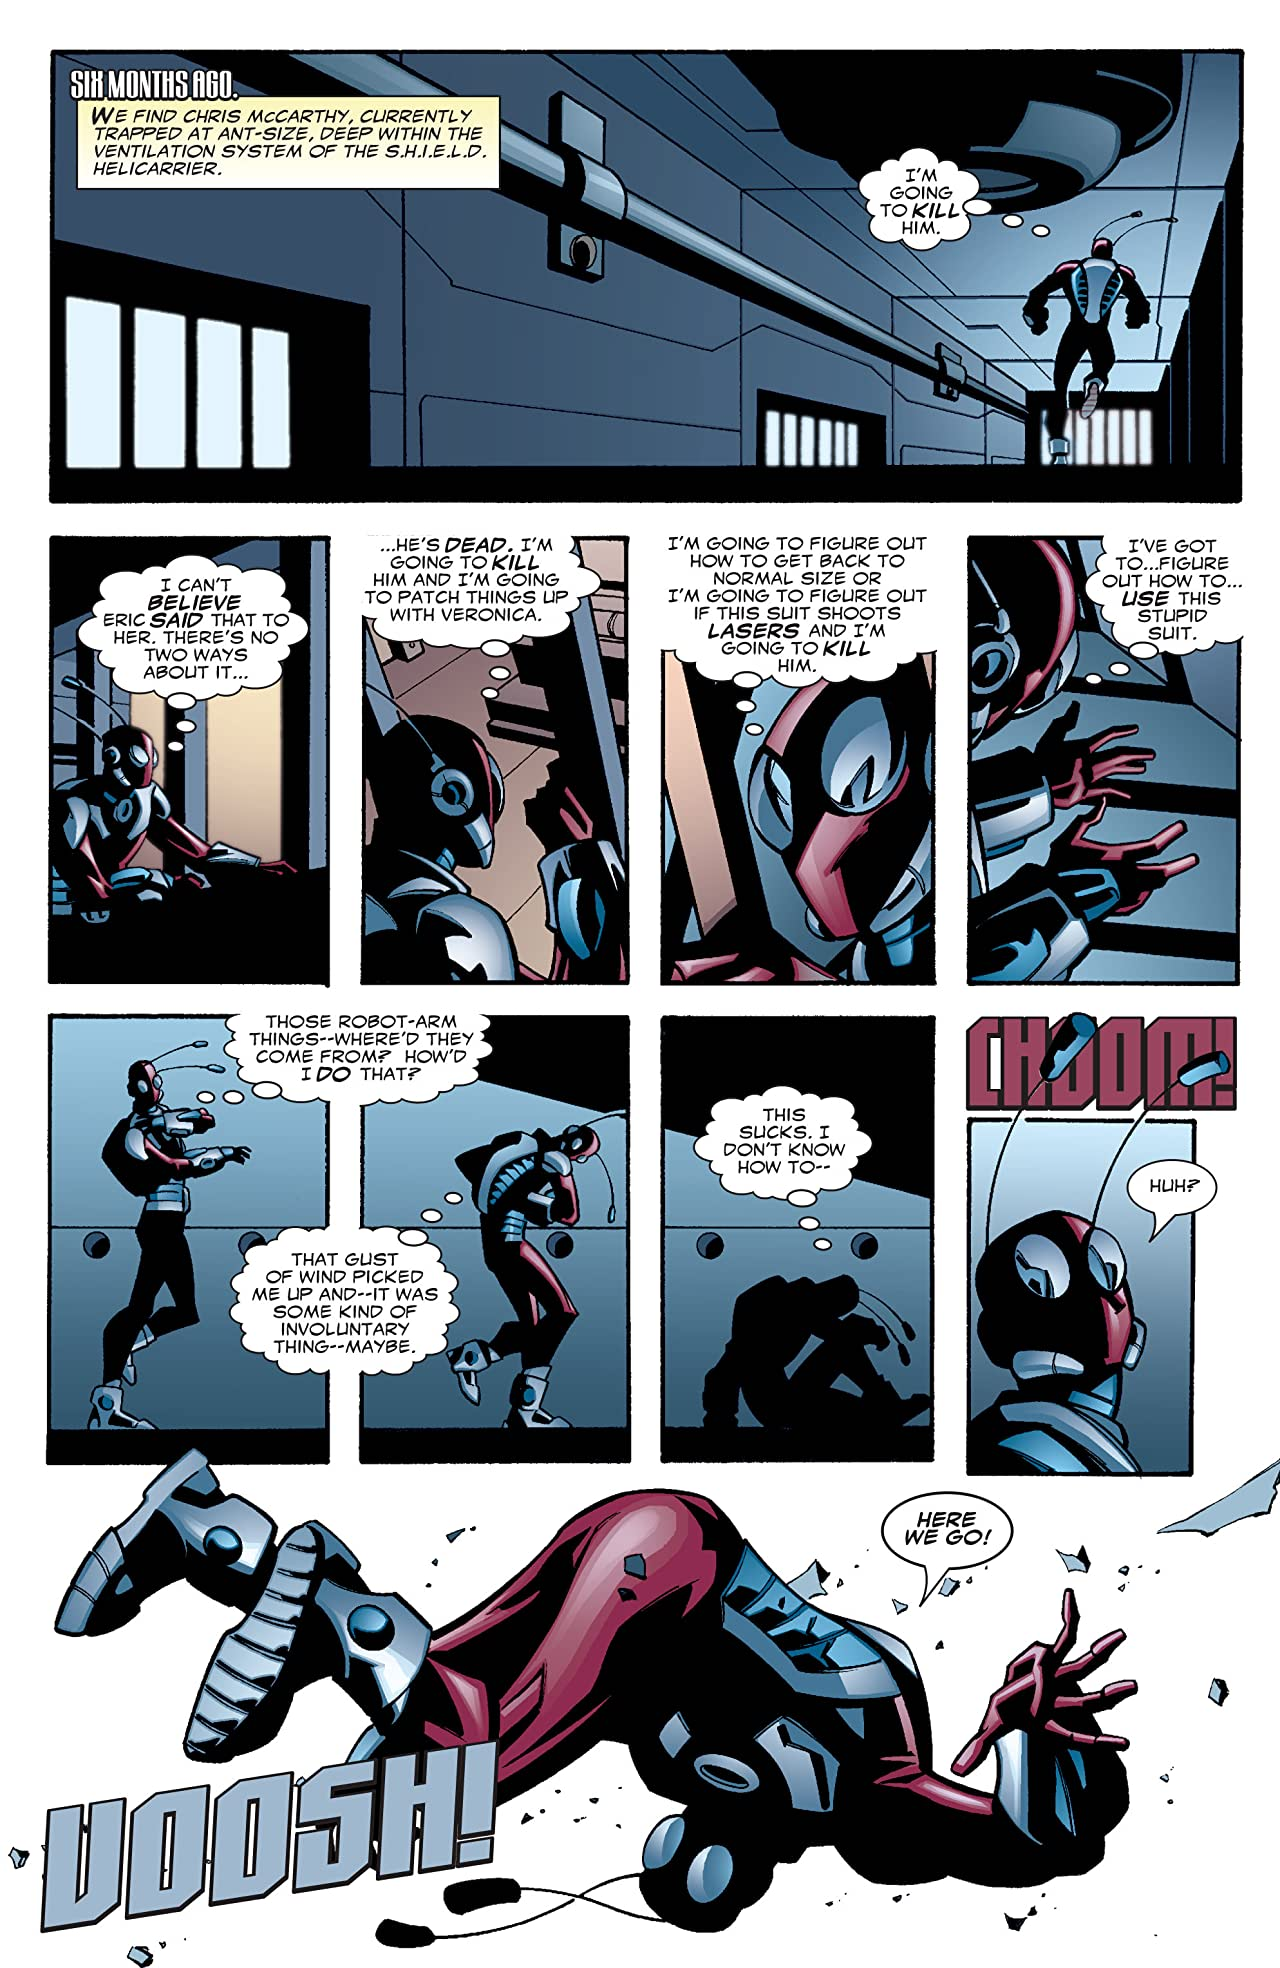 Irredeemable Ant-Man #2